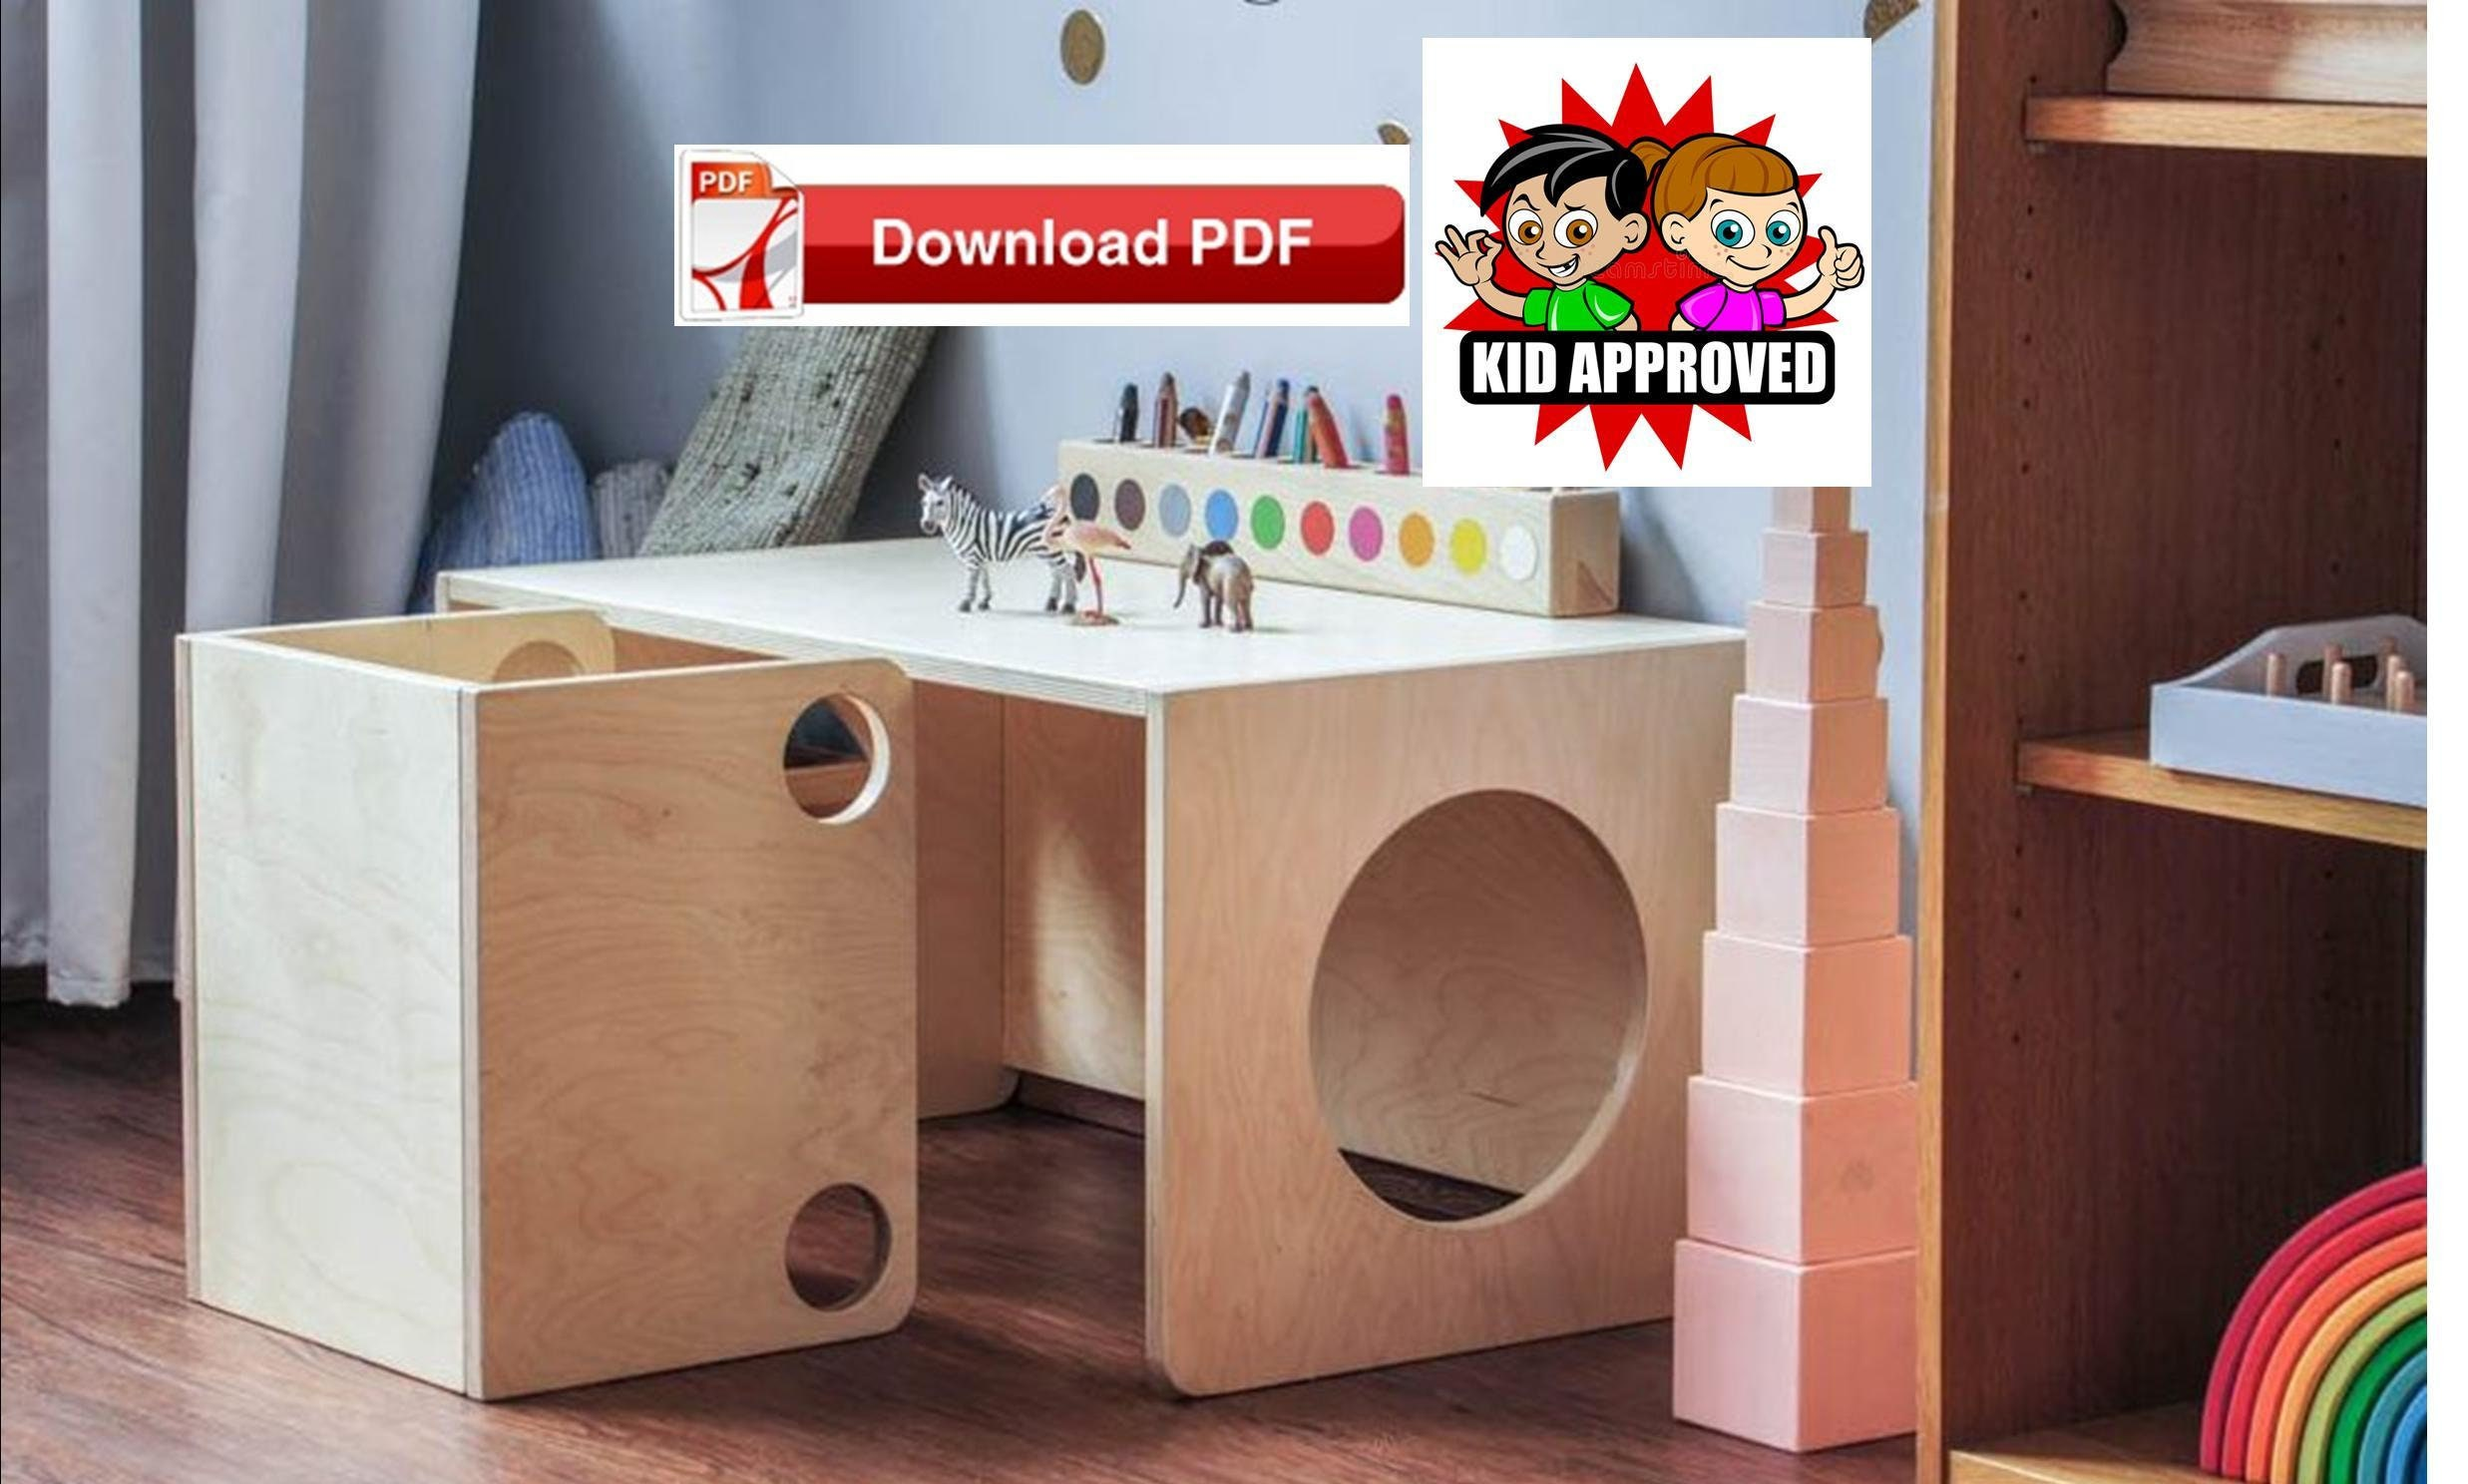 Swell Montessori Cube Chairs And Desk Table Plan Diy Activity Table And Chair Plan Toddler Chair Plan Toddler Table Plan Kids Craft Table Plan Beutiful Home Inspiration Truamahrainfo